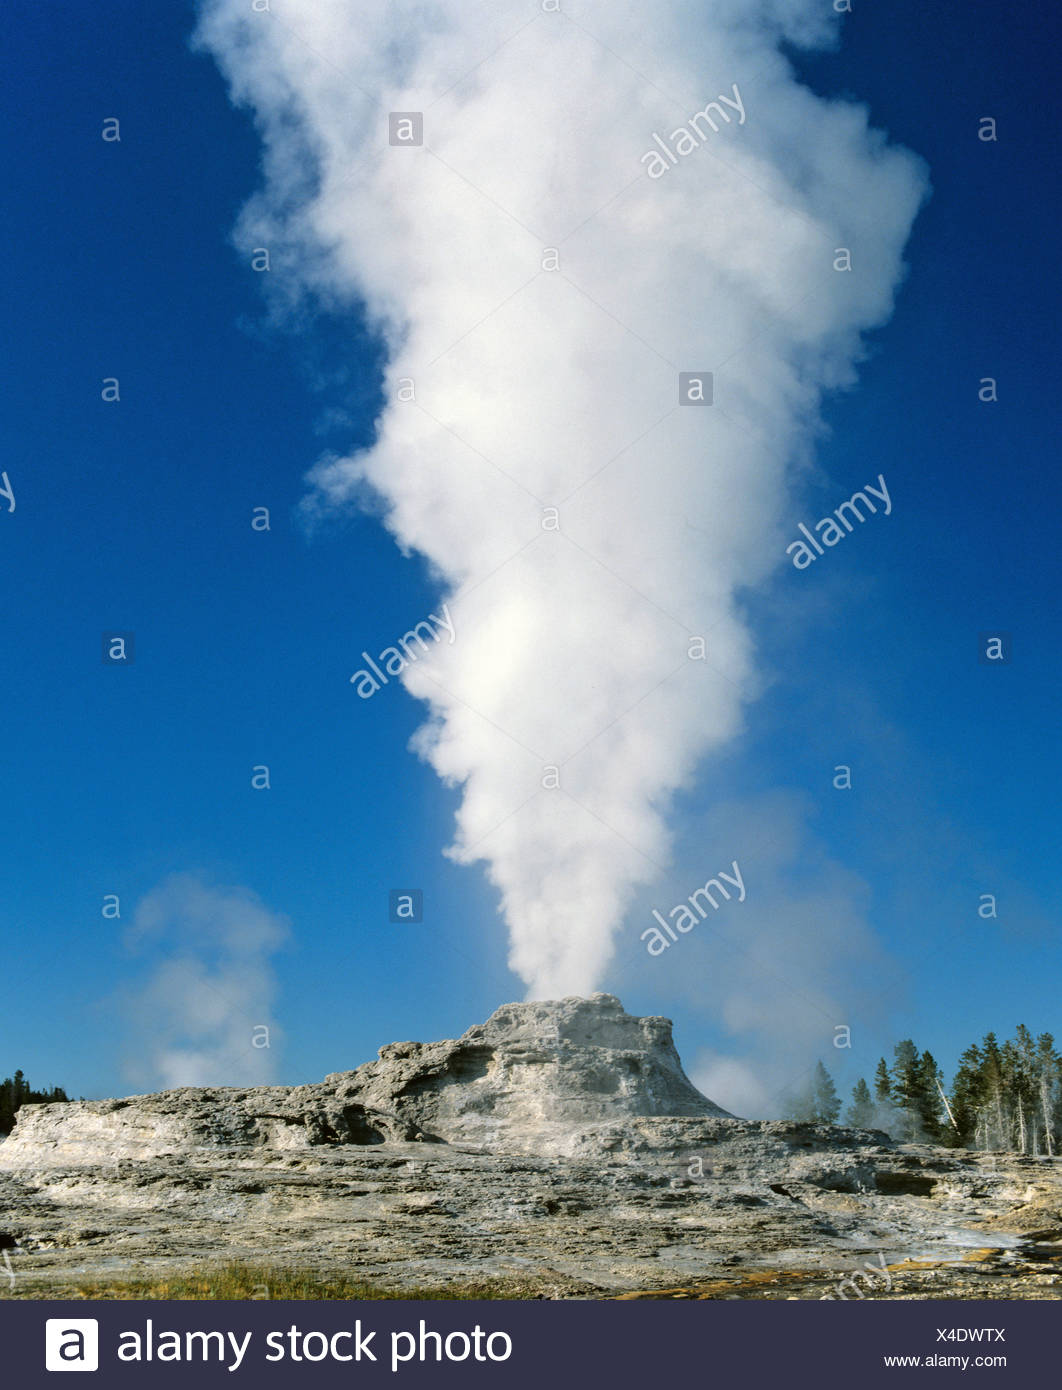 Dampf steigt von Castle-Geysir, Yellowstone-Nationalpark, Rocky Mountains, Wyoming, USA Stockbild